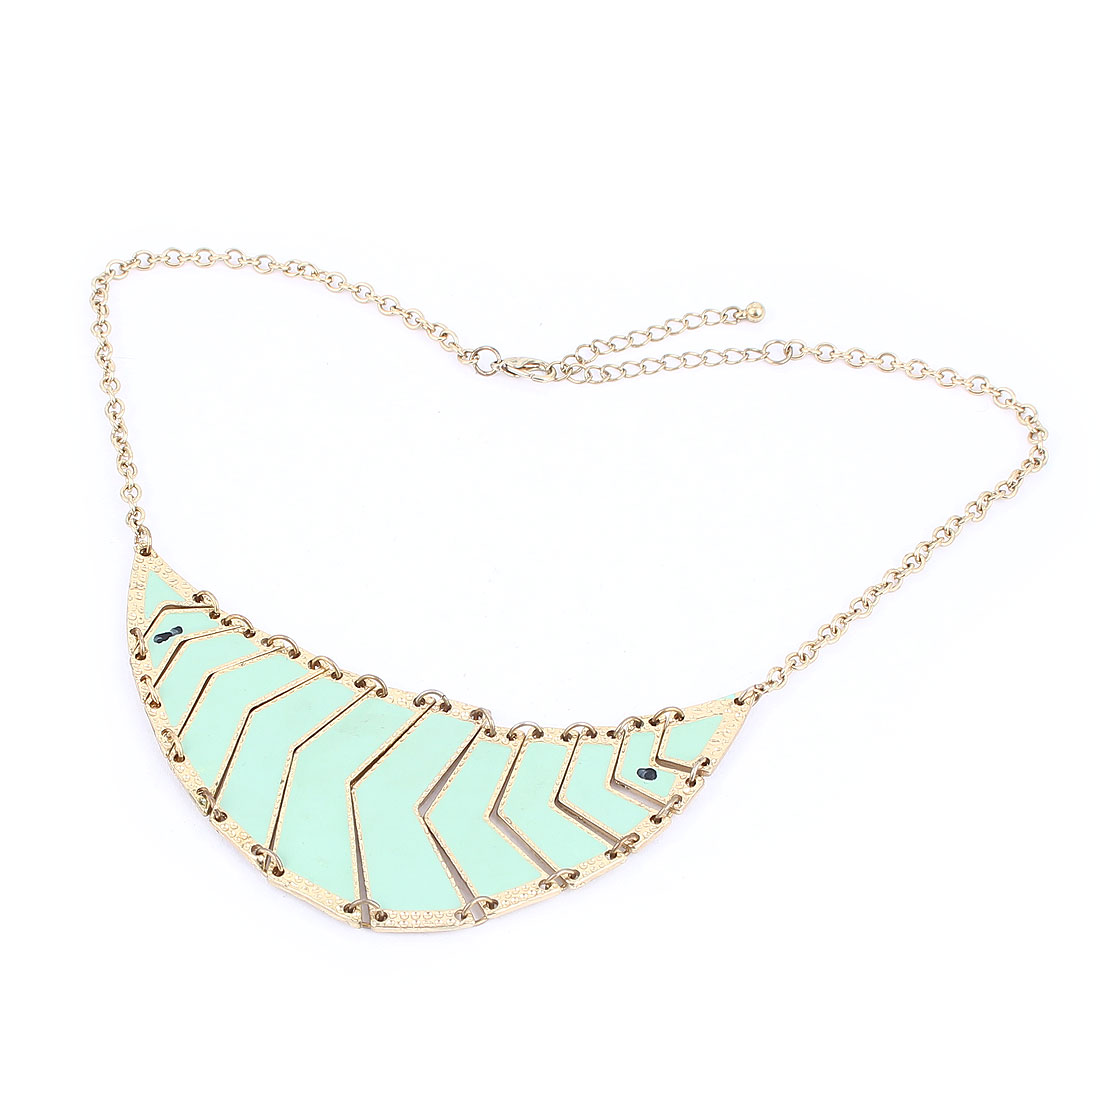 Gold Tone Light Green Plastic Crystals Inlaid Metal Lobster Buckle Strip Link Slim Chain Necklace Neckwear Collar for Ladies Women